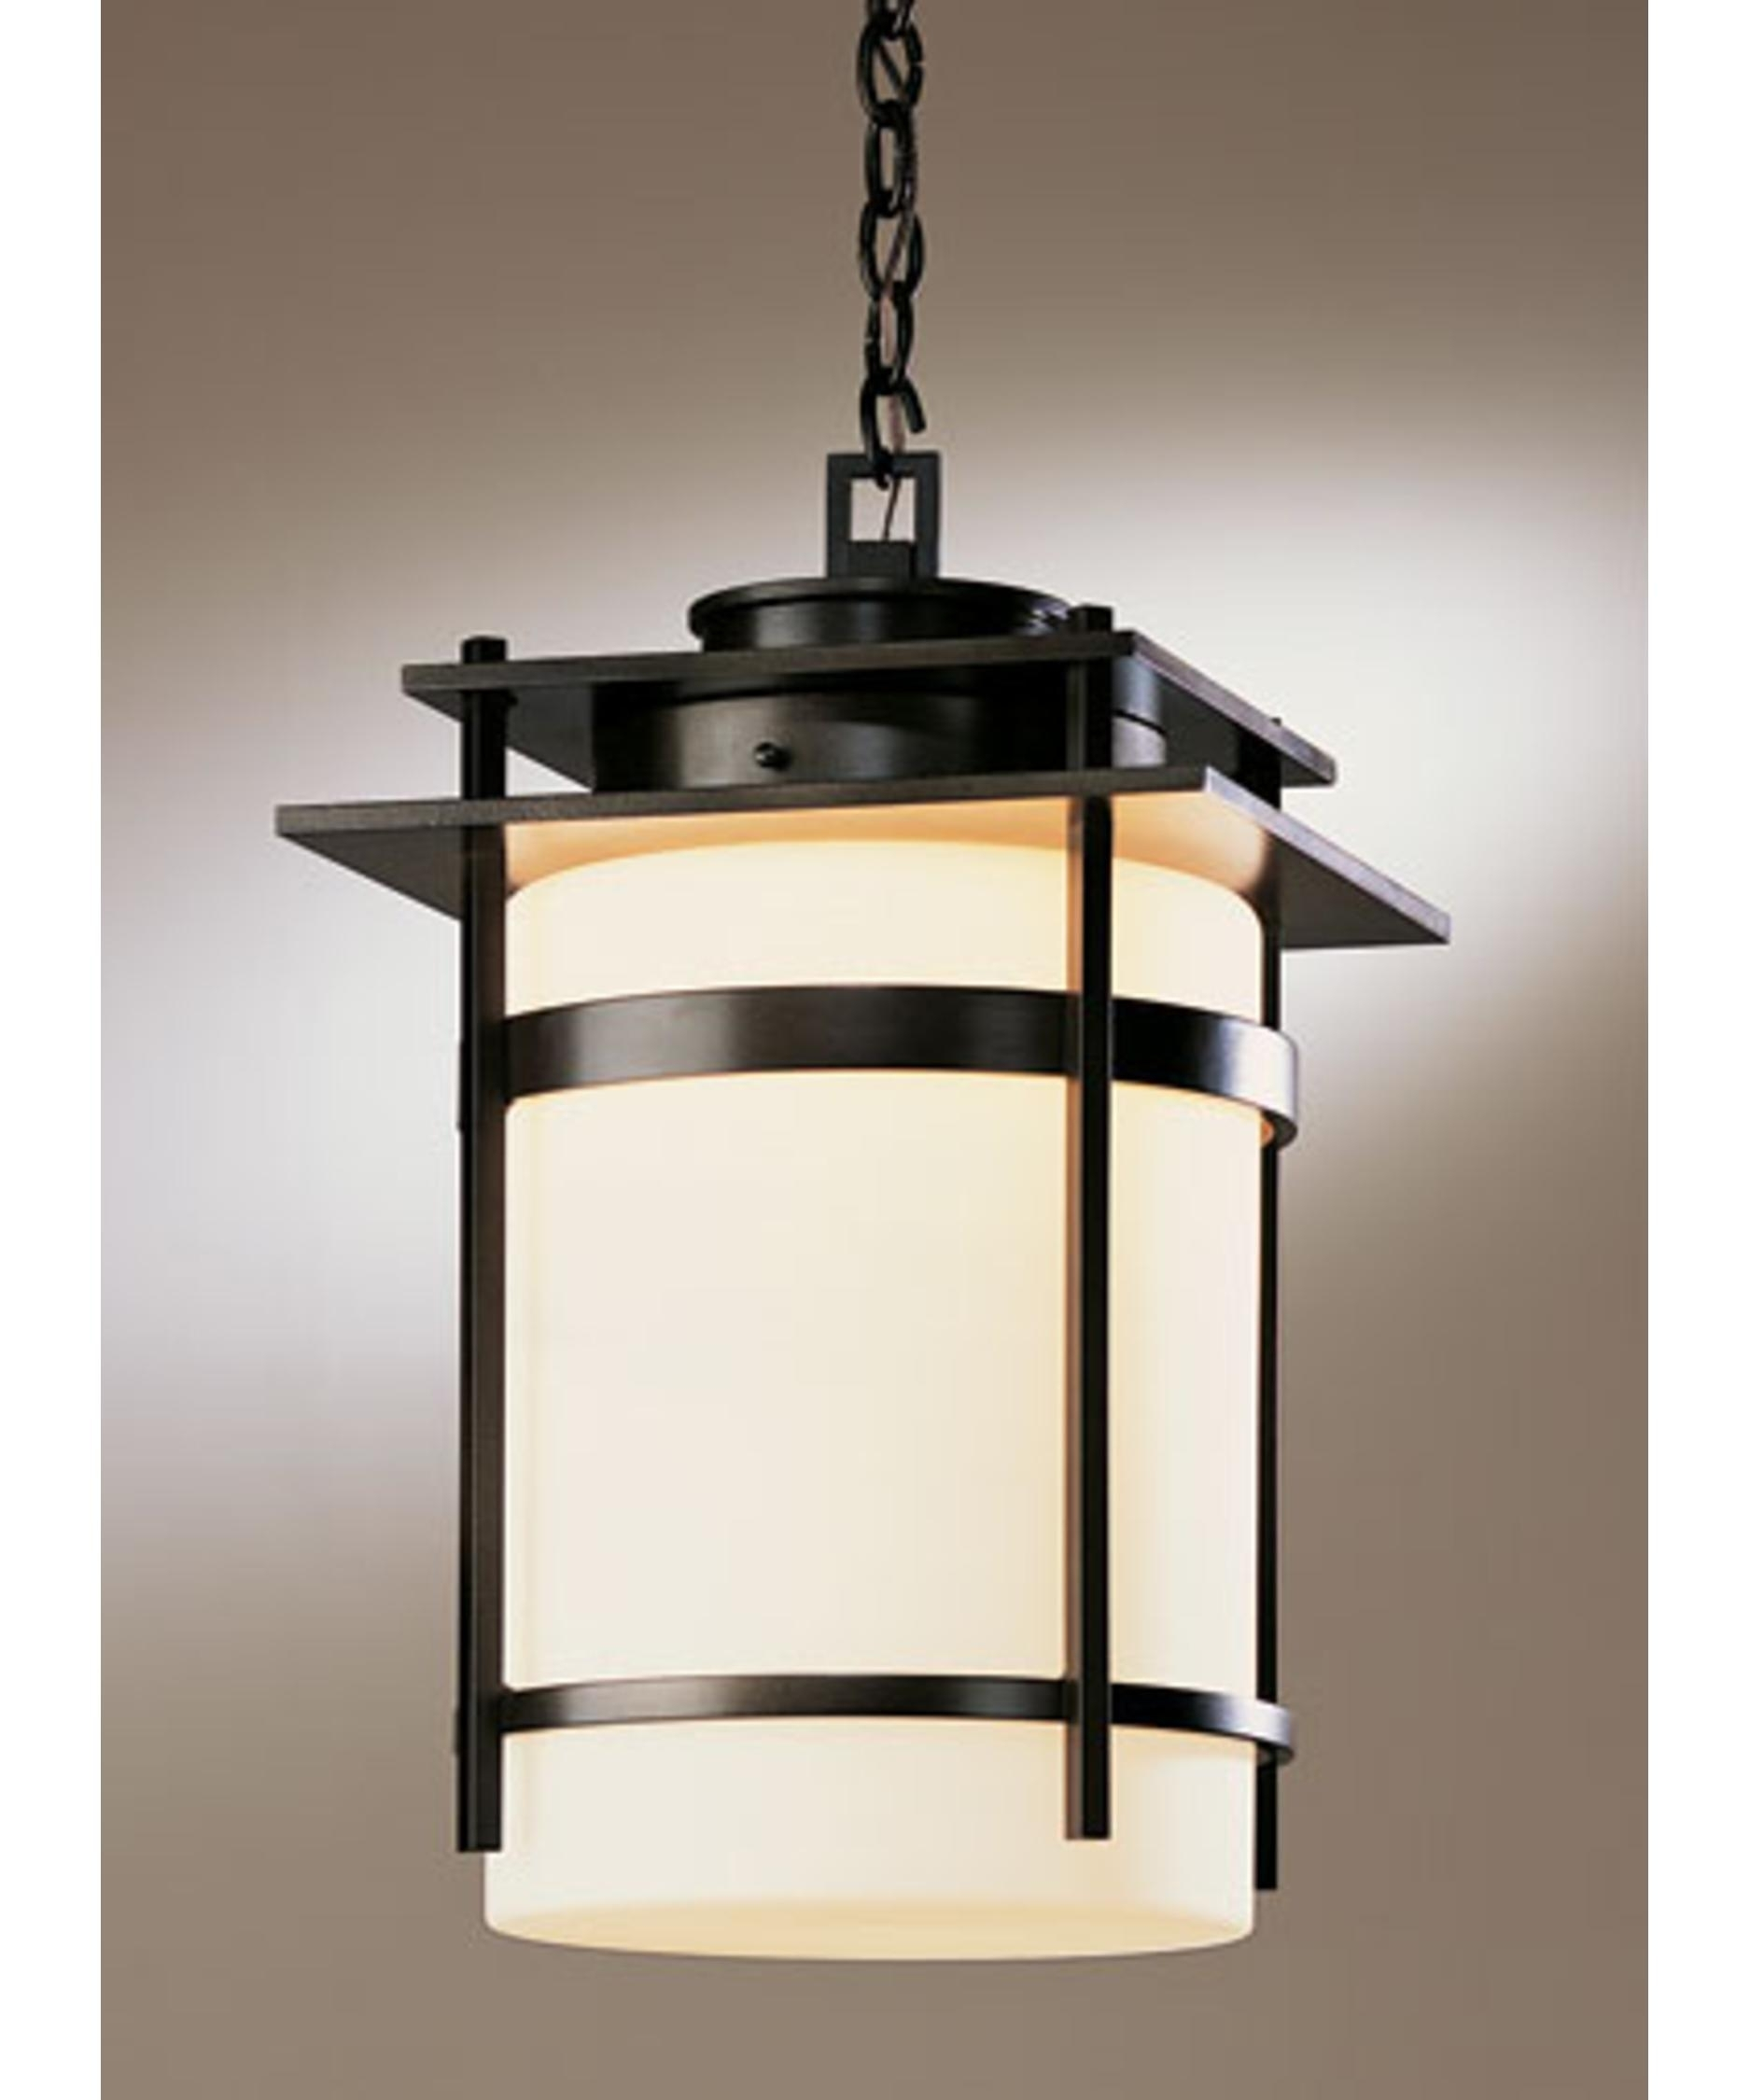 Fixtures Light Gas Lantern Hanover Within Outdoor Hanging Lights Masters